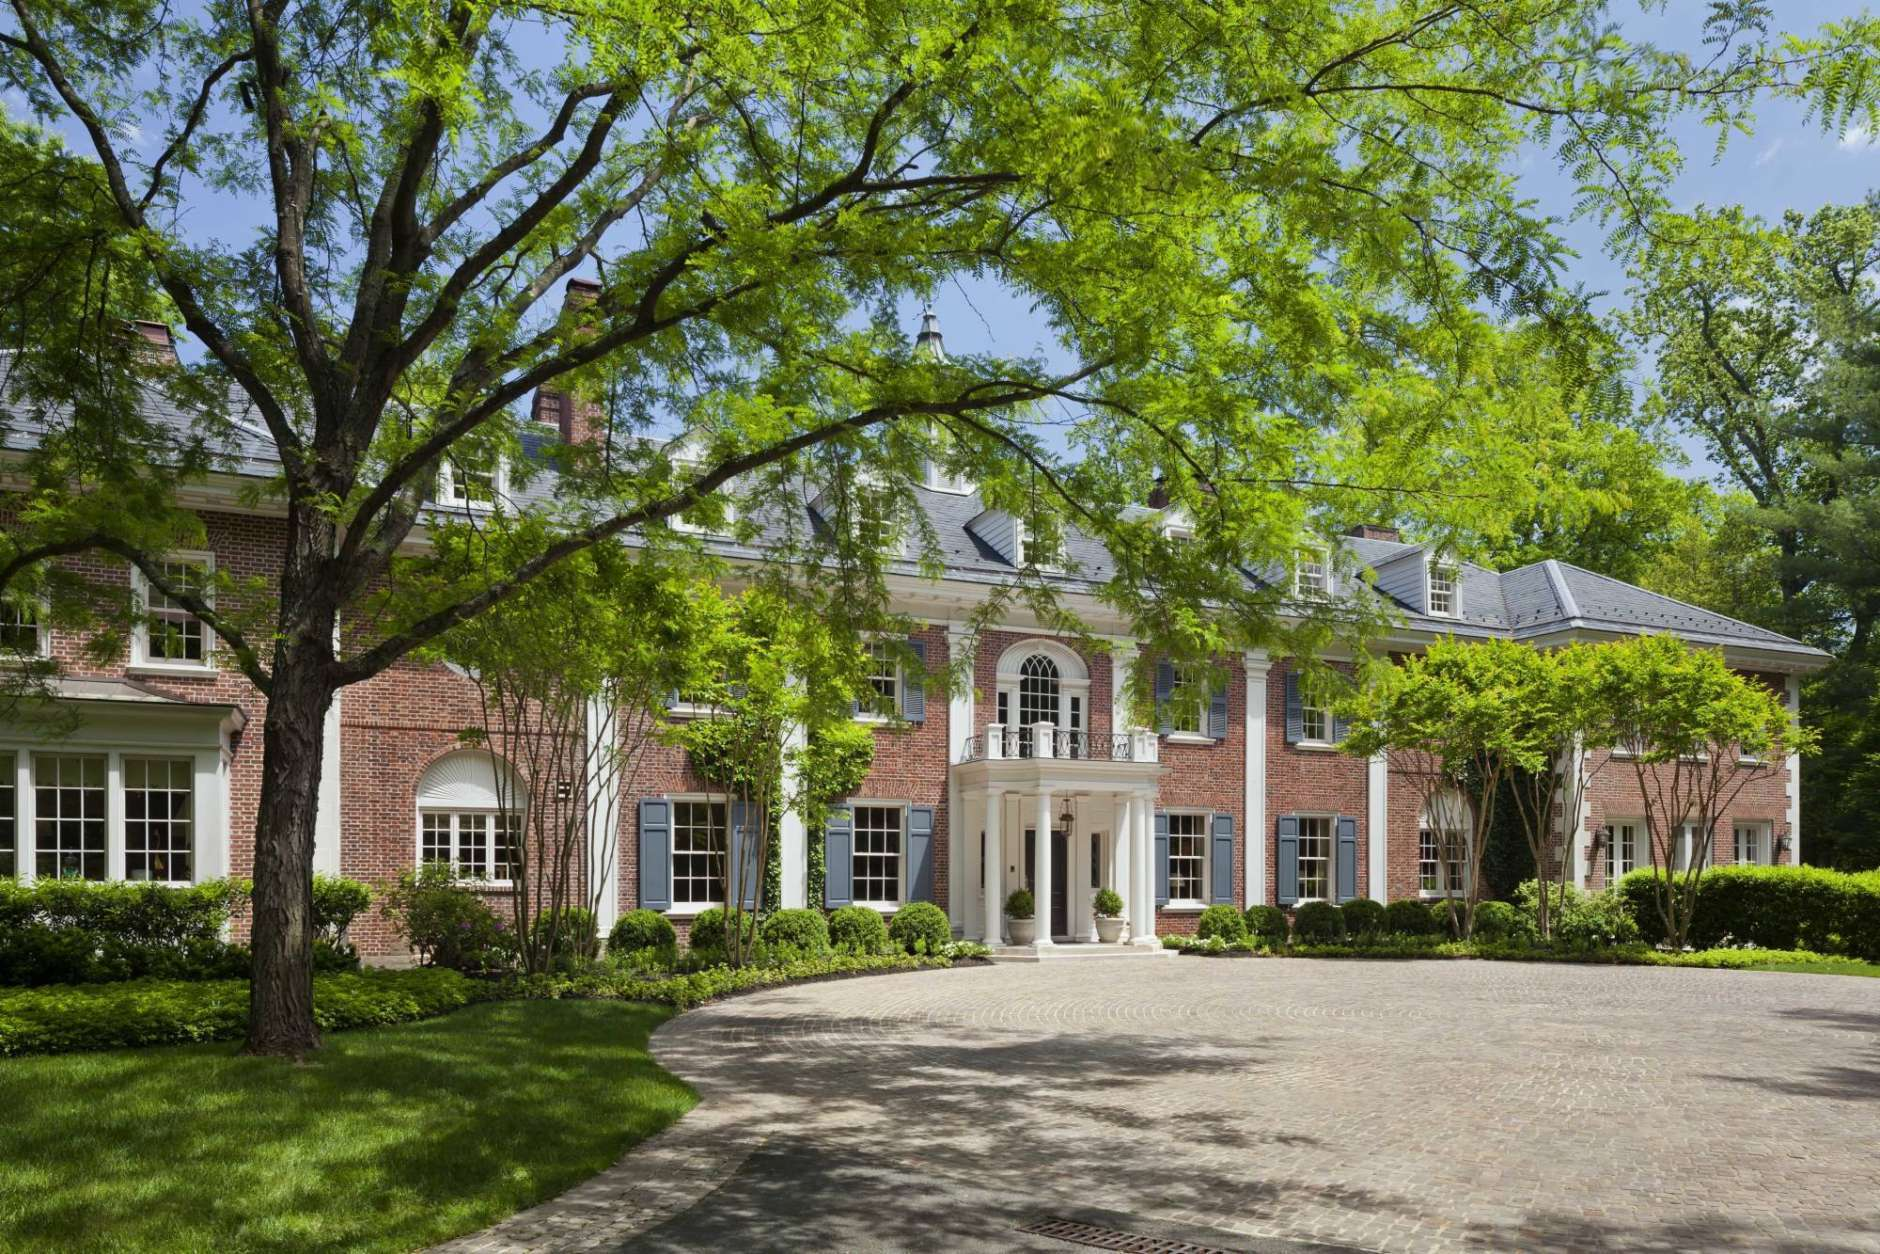 In this May 10, 2017, photo provided by TTR Sotheby's International Realty, the McLean, Va., childhood home of Jacqueline Kennedy Onassis is shown. The home was put up for sale by its current owners for $49.5 million. (Gordon Beall/TTR Sotheby's International Realty via AP)